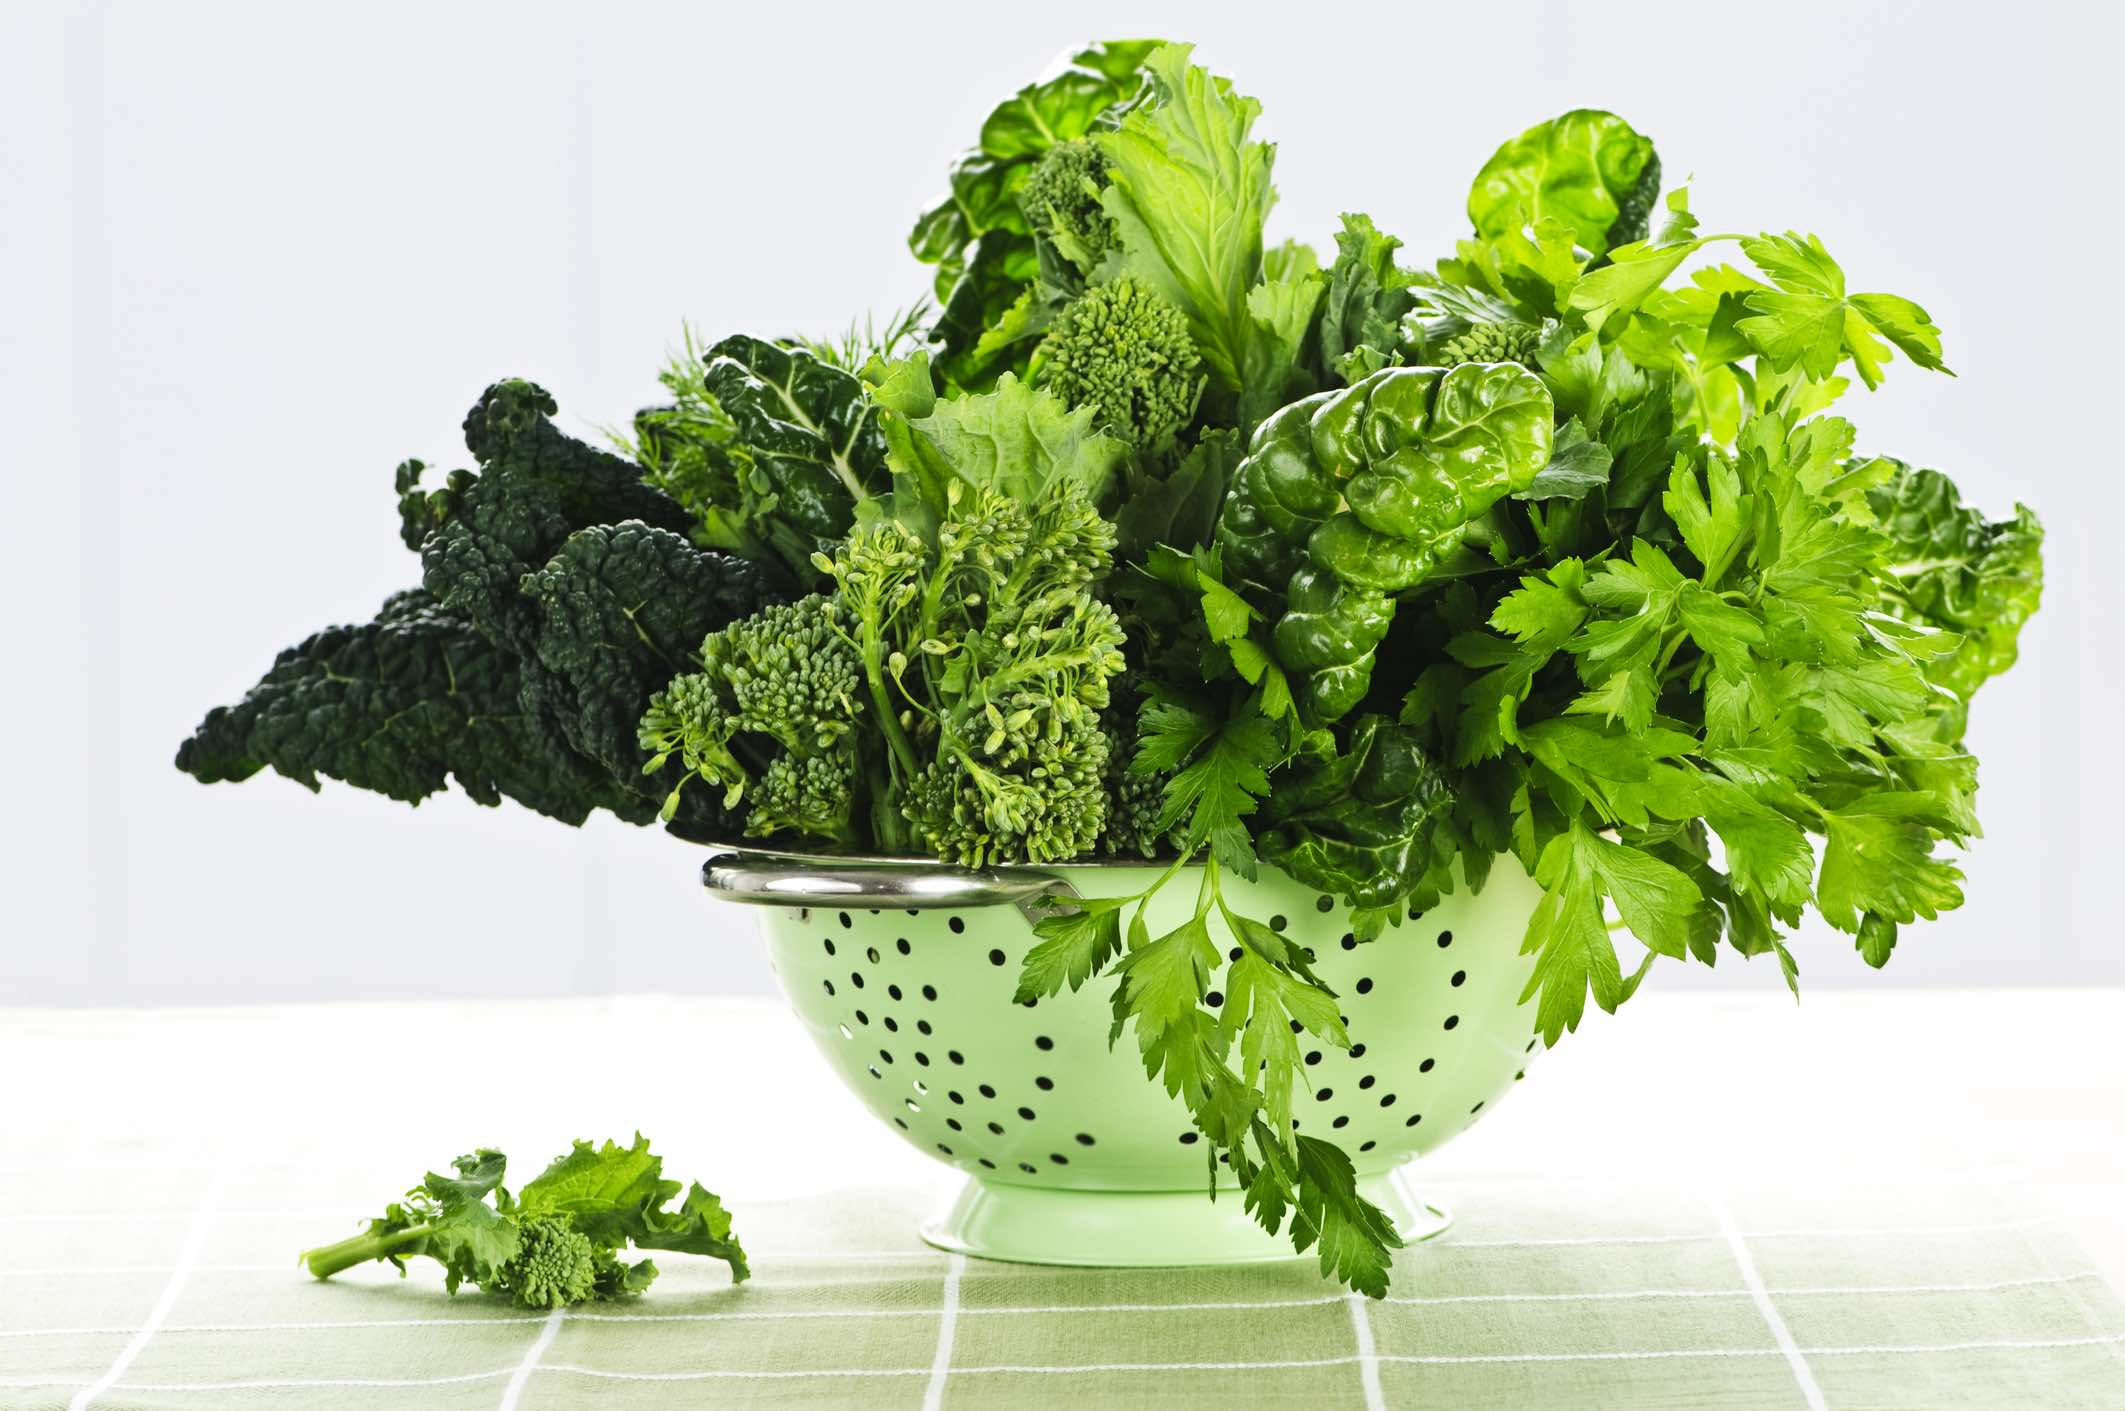 Dark green leafy vegetables in colander